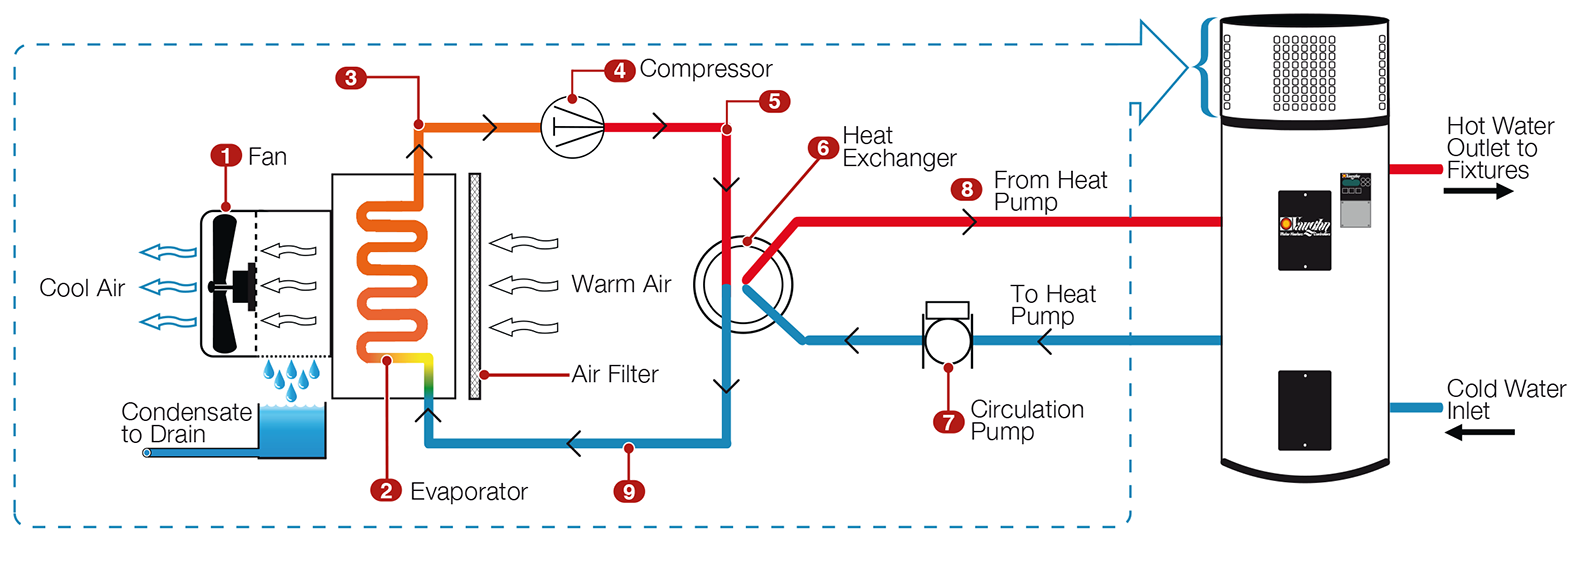 High Efficiency Electric Water Heater Vaughn 3 Phase Heating Wiring Diagram Heat Pump Operational